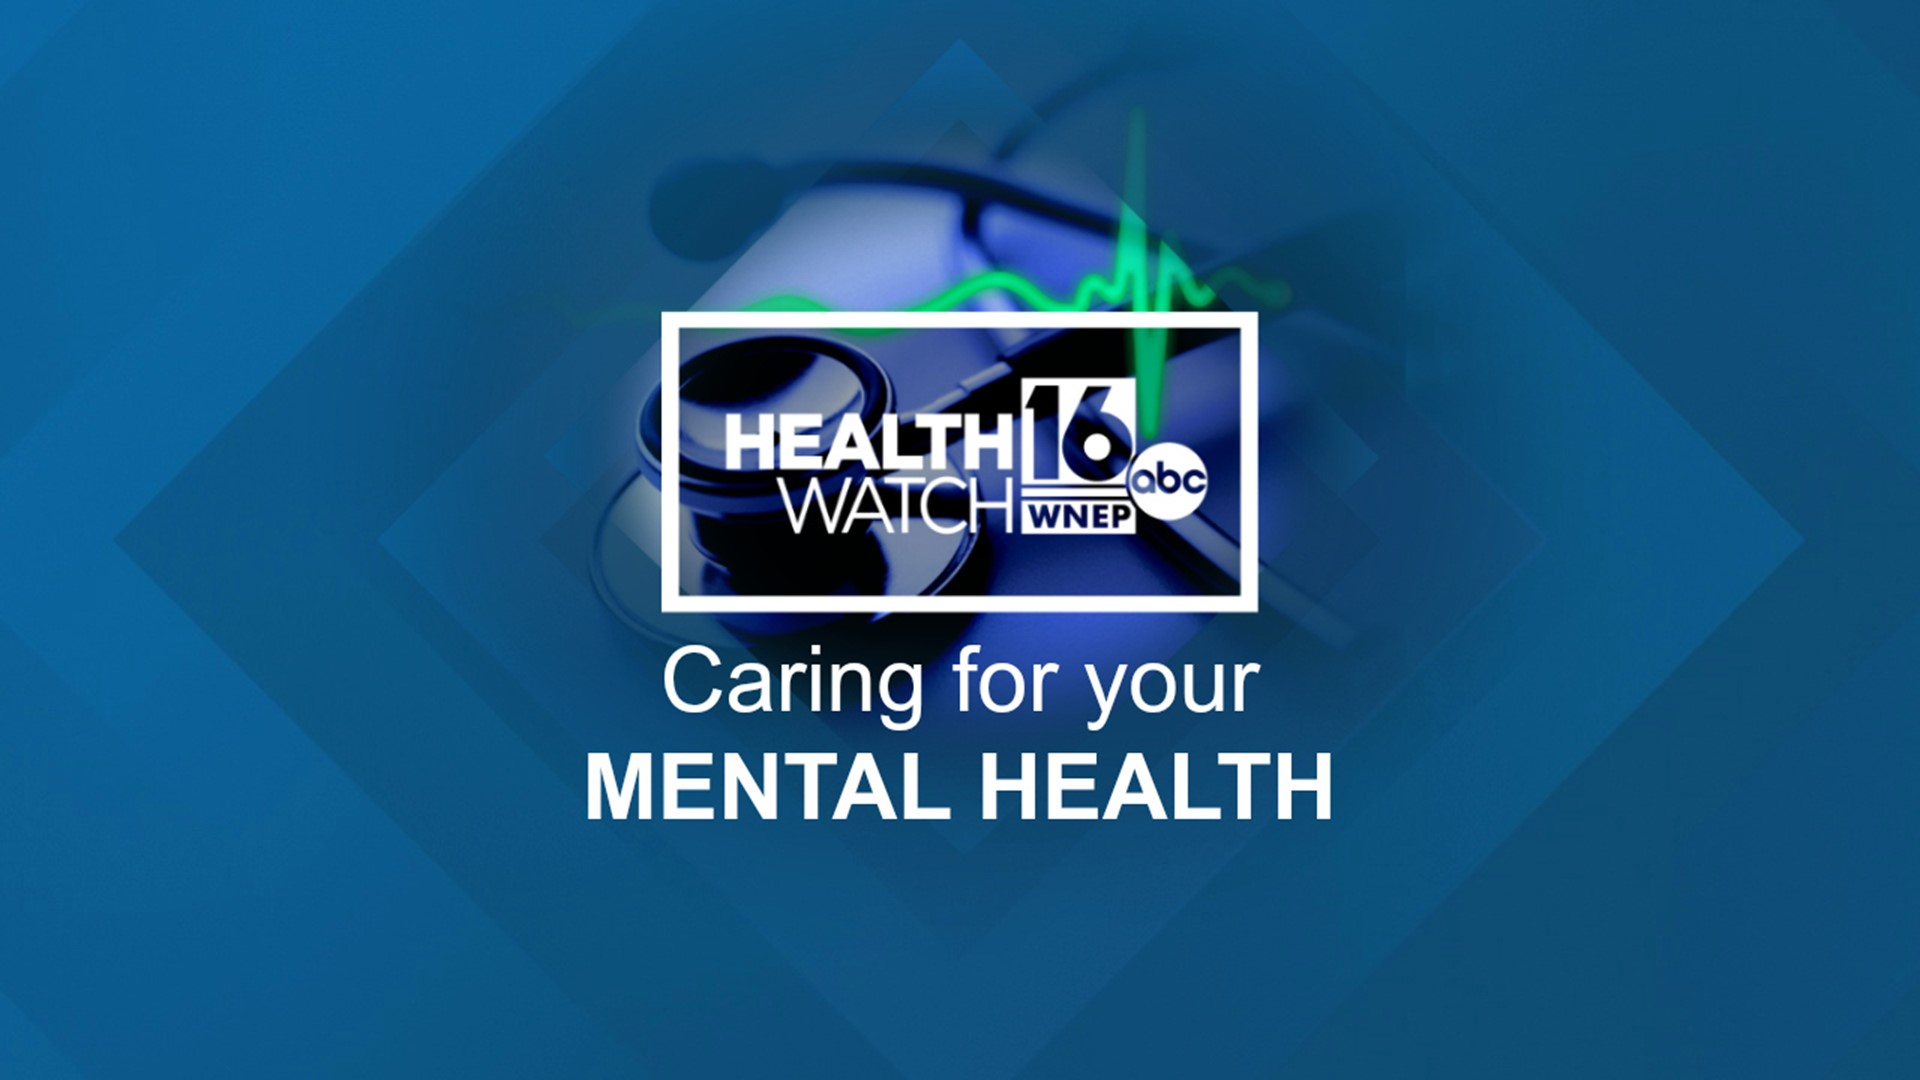 Healthwatch 16 Caring For Your Mental Health Wnep Com